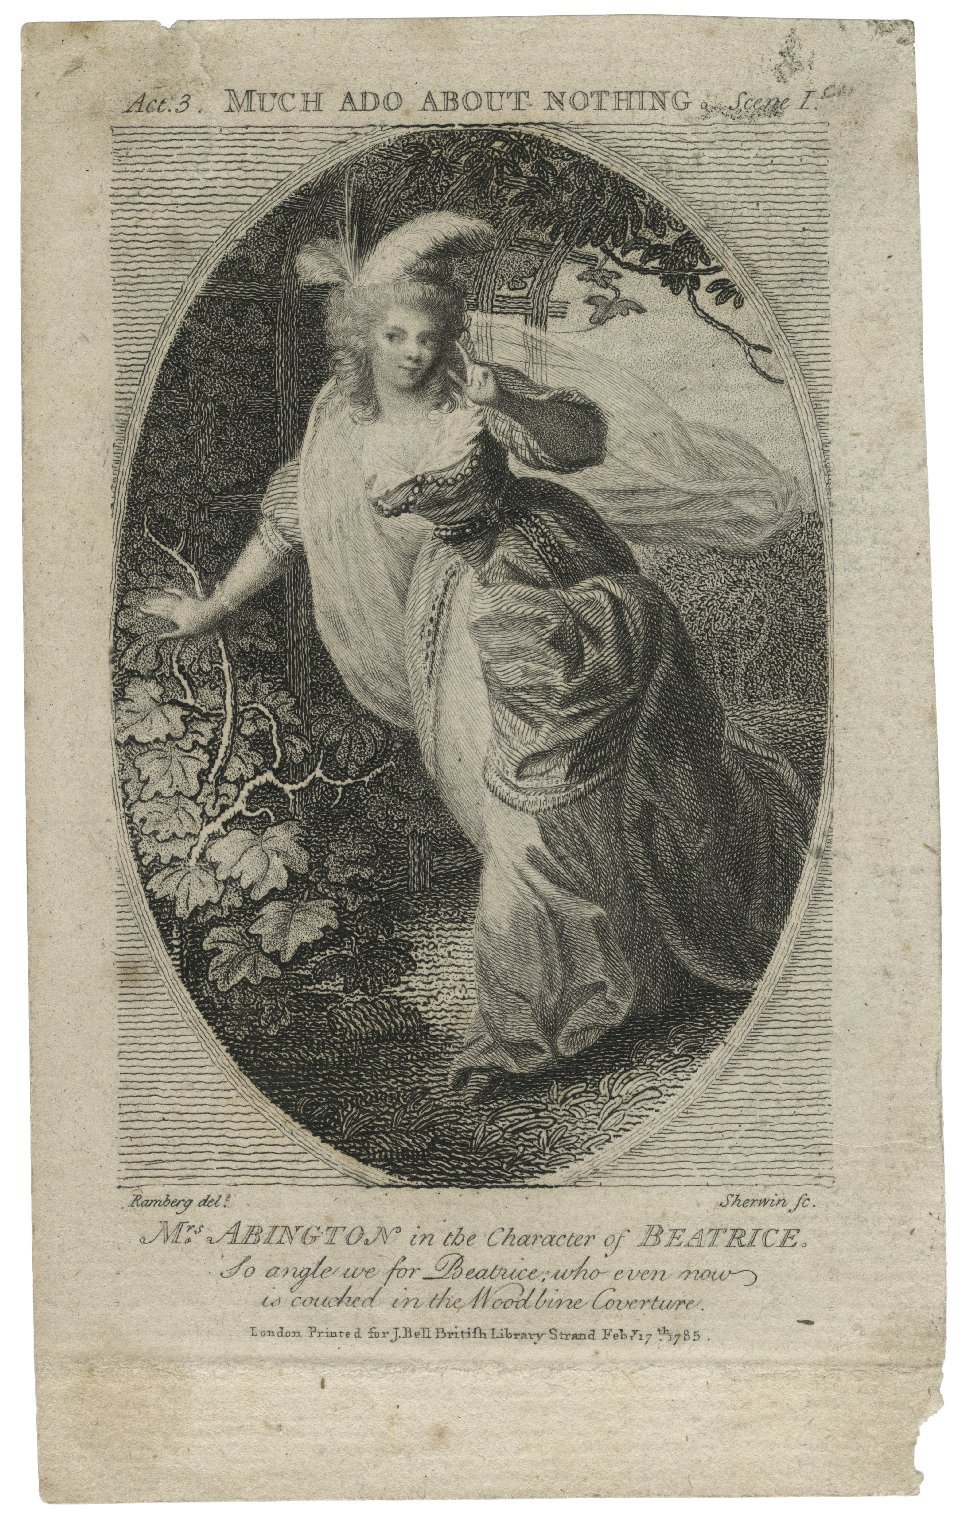 Much ado about nothing, act 3, scene I, Mrs. Abington in the character of Beatrice [graphic] / Ramberg delt. ; Sherwin sc.